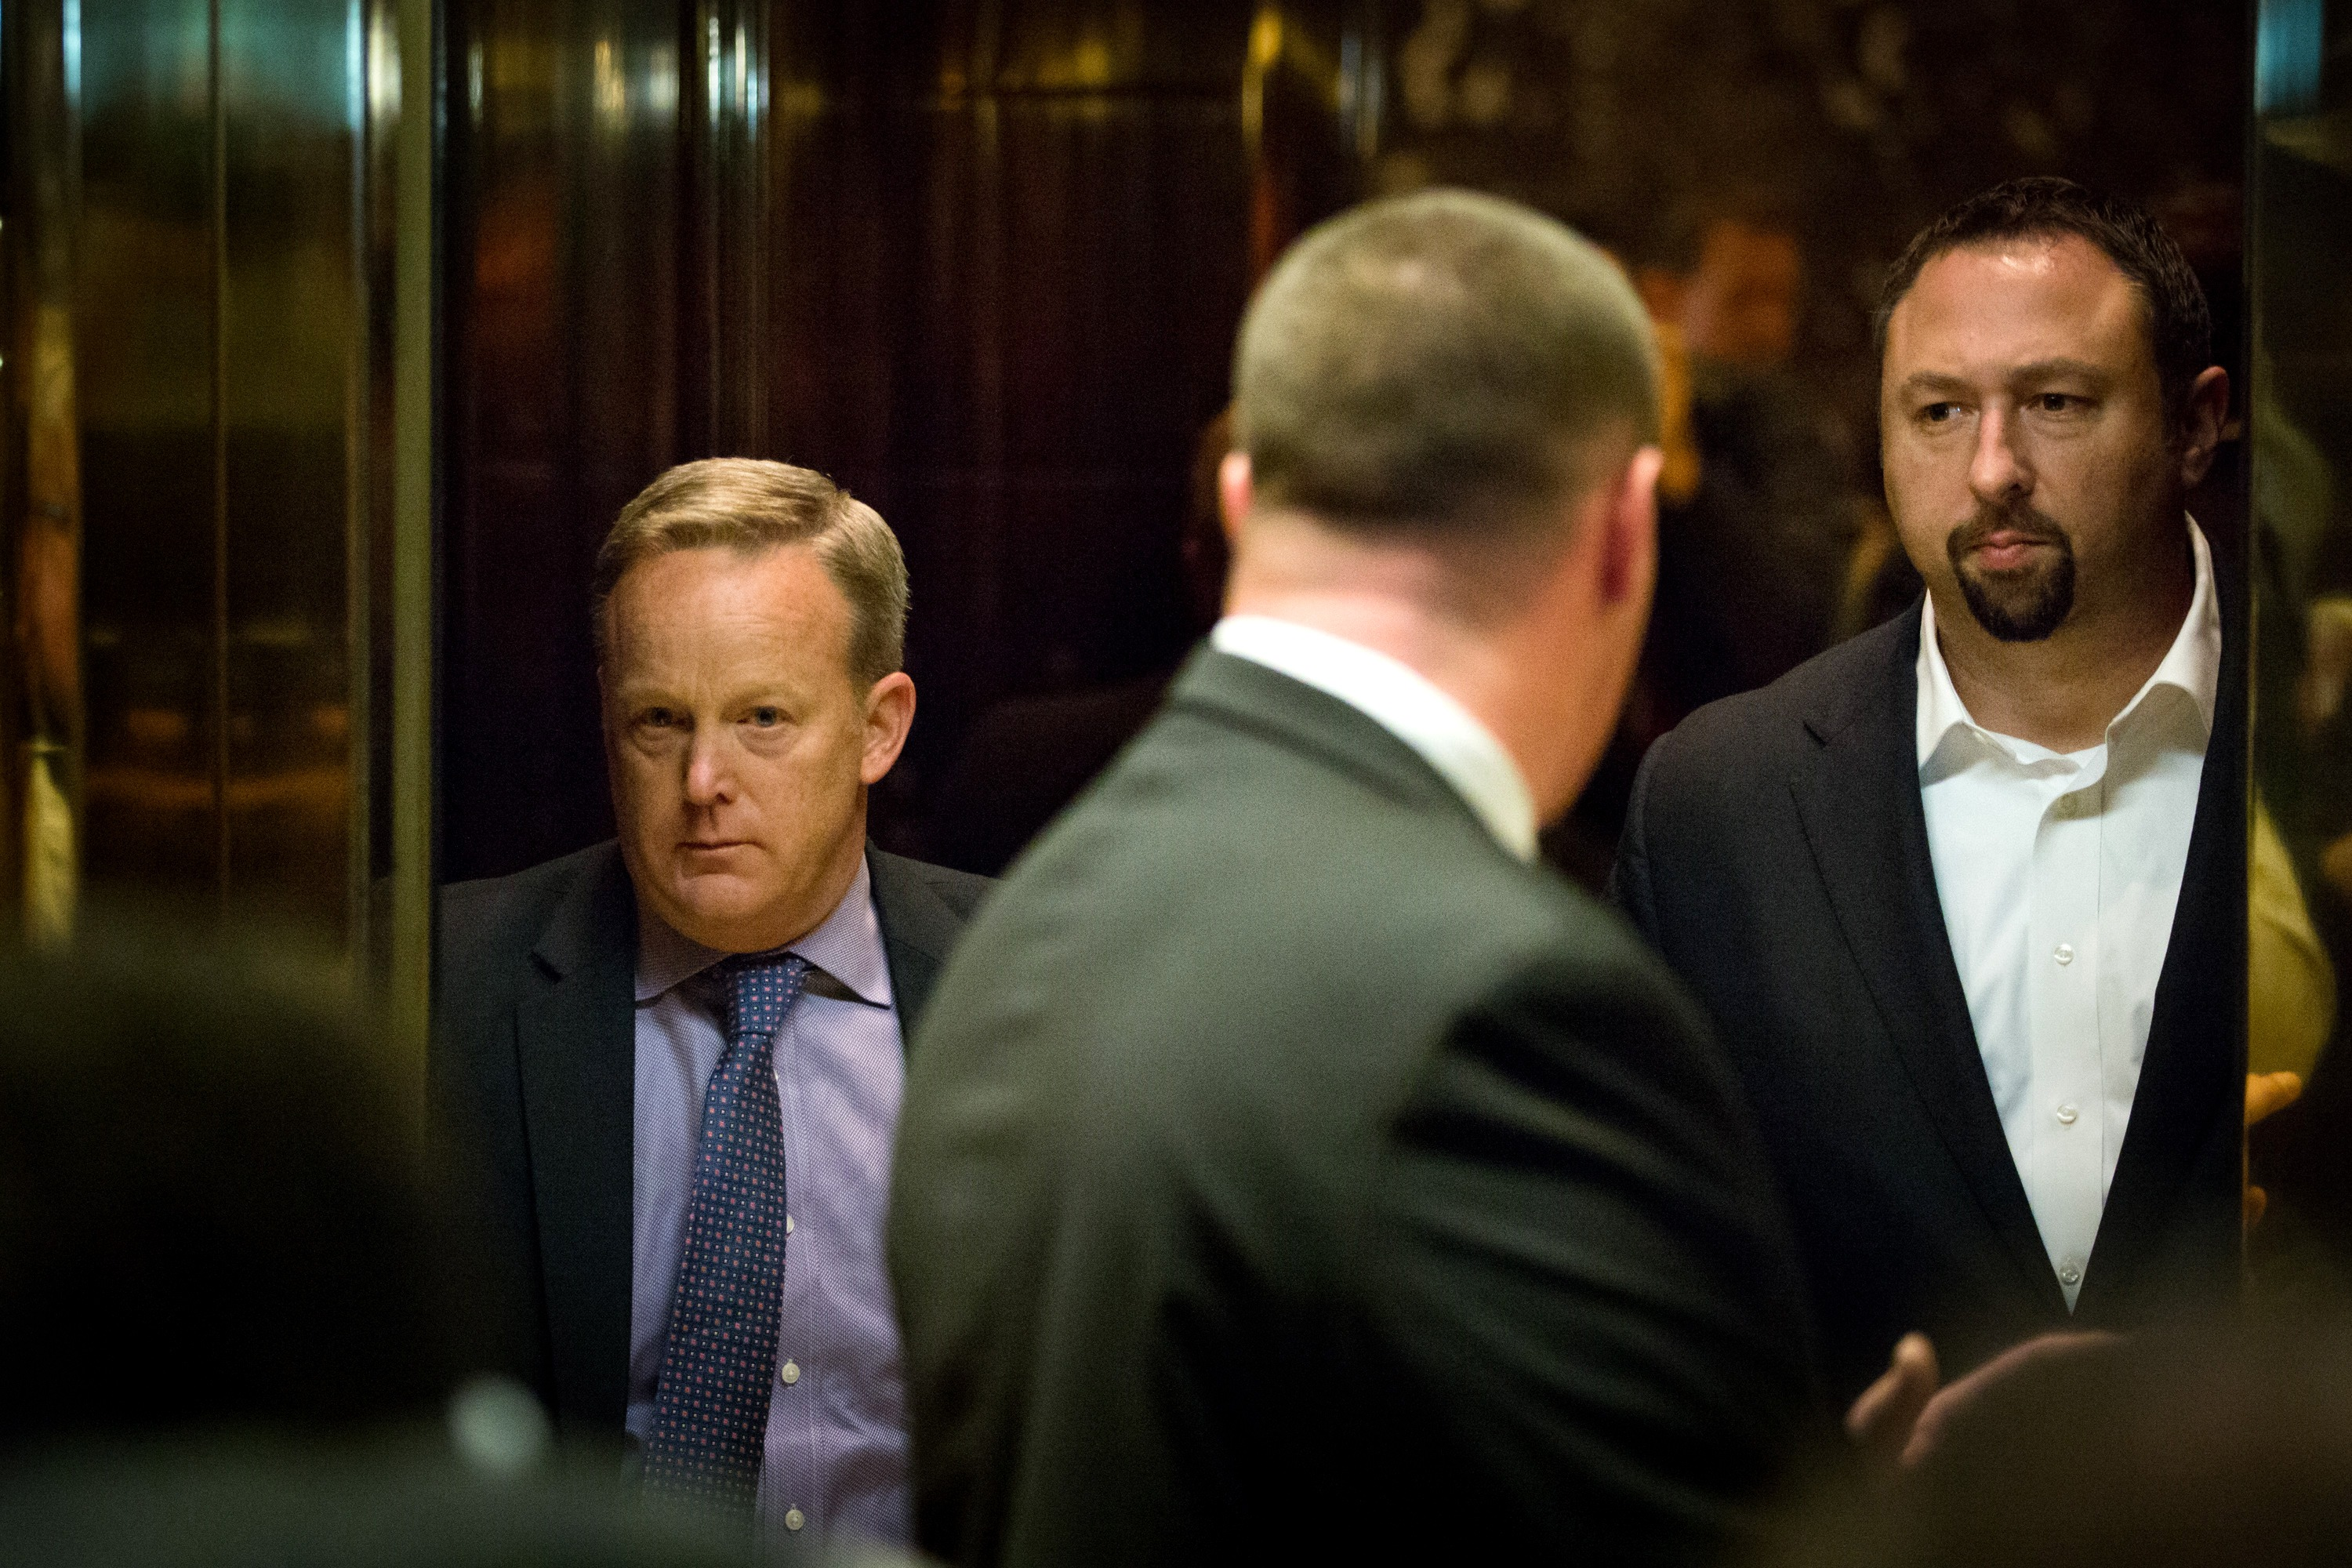 Sean Spicer, left, and Jason Miller, both senior advisors to President-elect Donald Trump, arrive at Trump Tower on November 13, 2016, in New York City (Getty Images)